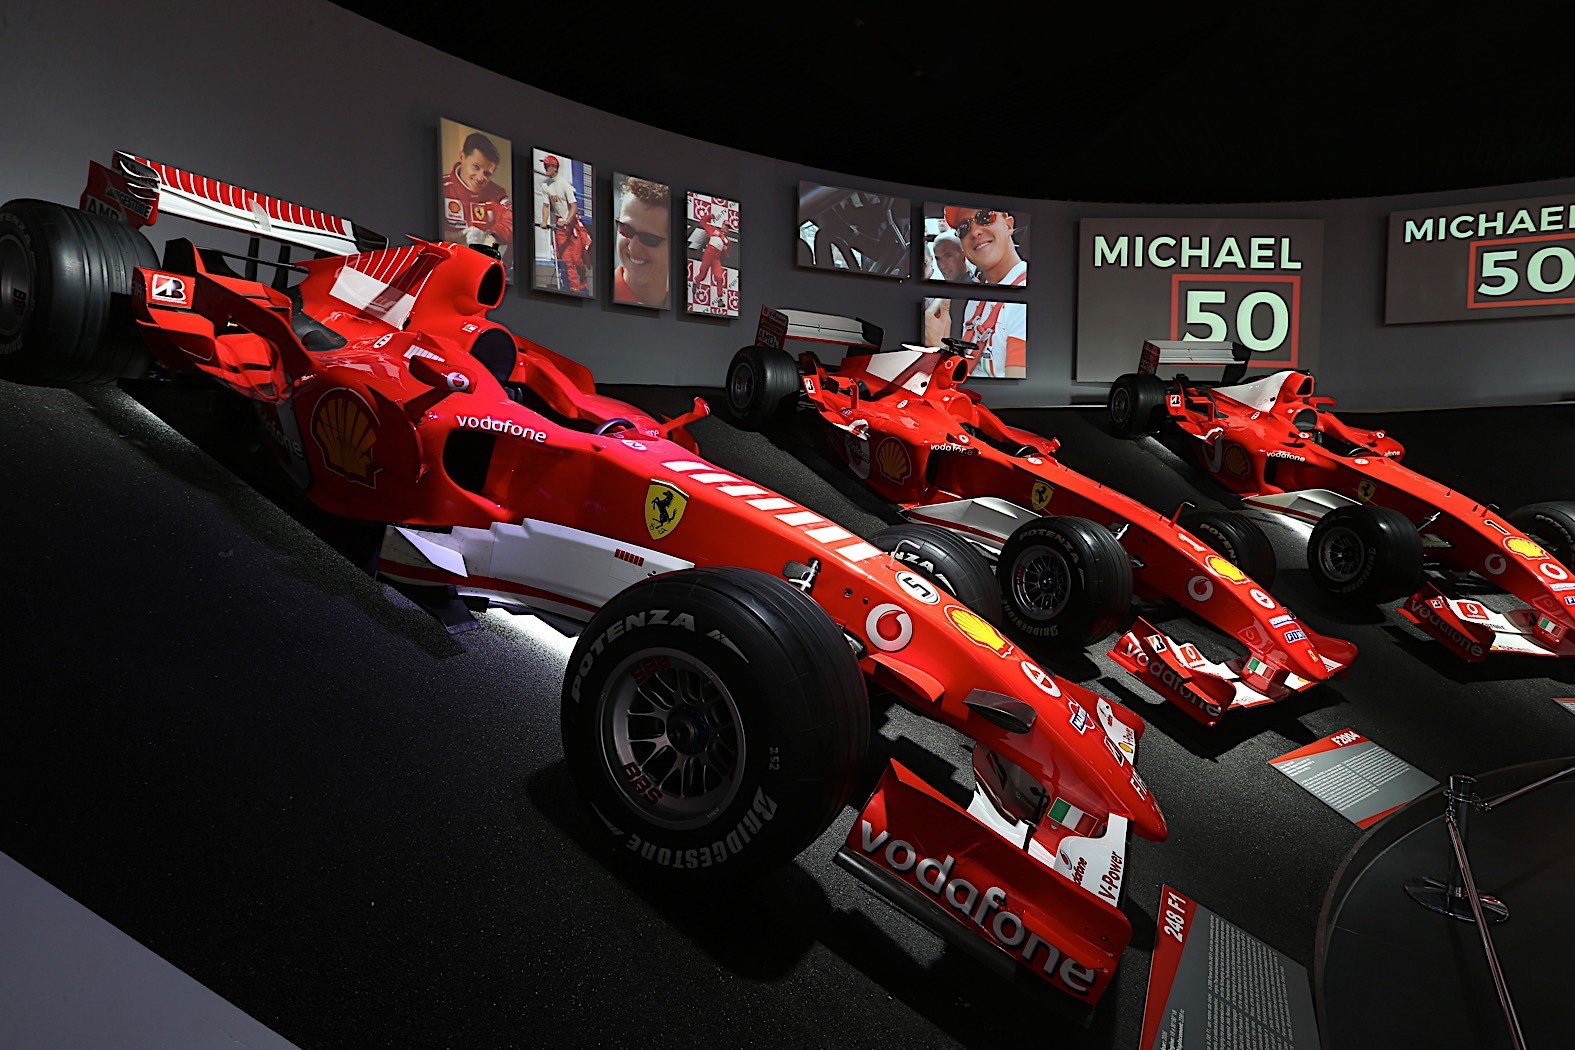 michael-schumachers-formula-1-cars-on-display-at-the-ferrari-museum_17